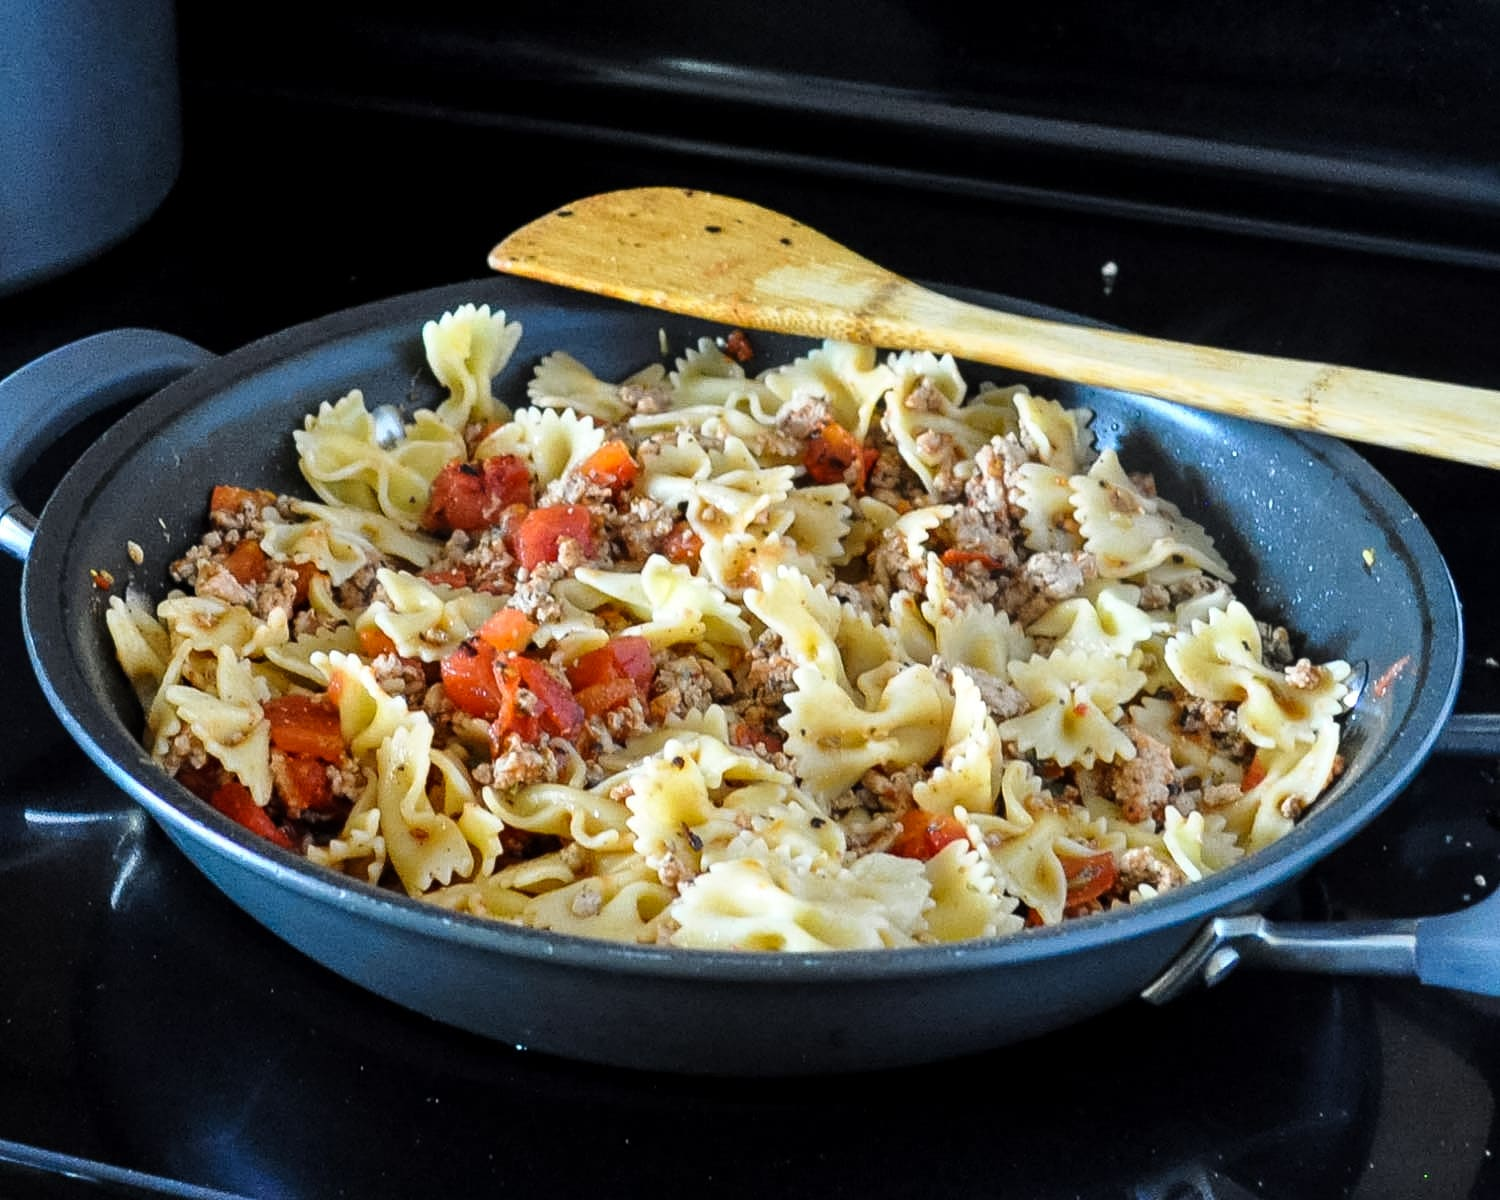 ground turkey and spices with tomatoes and pasta cooking in a skillet